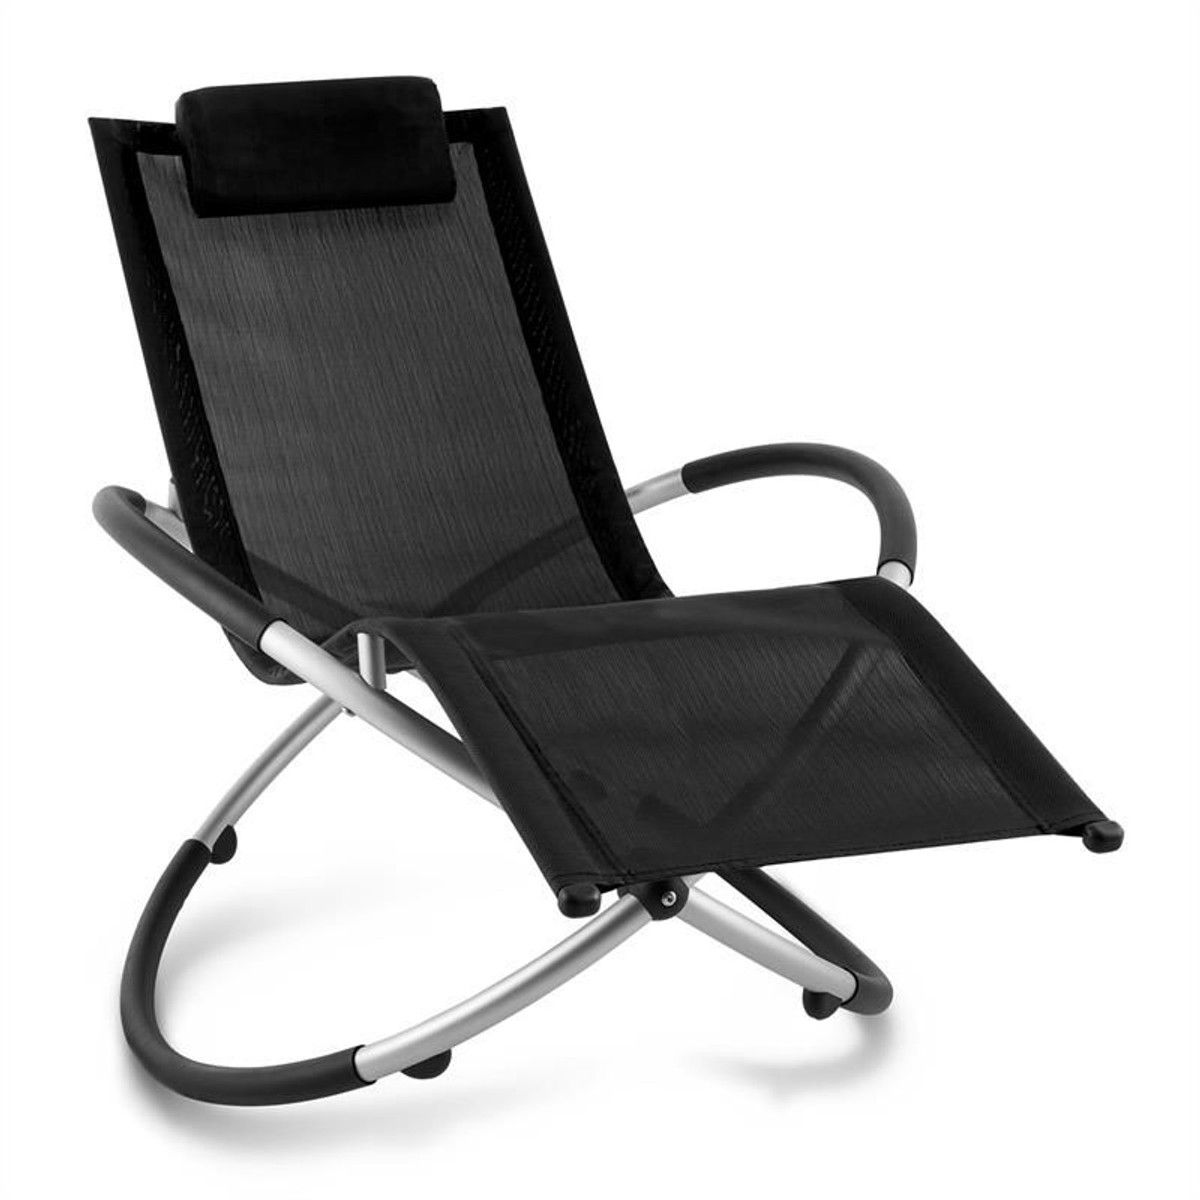 Chaise Aluminium Longue Chilly Taille Billy Jardin Transat Noir EH29IWD